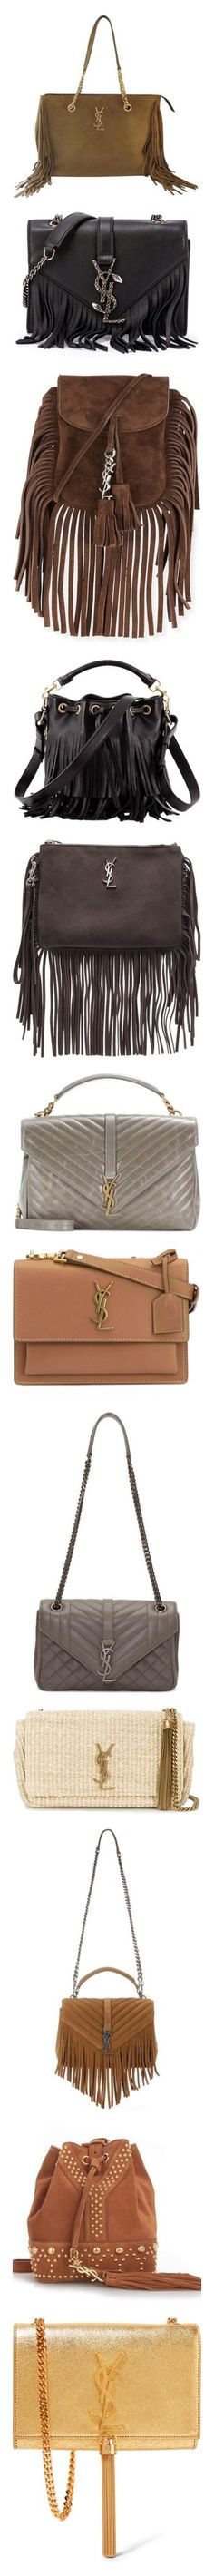 """YSL / SAINTLAURENT BAGS"" by woodsenlikethis ❤ liked on Polyvore featuring bags, handbags, shoulder bags, brown, structured shoulder bags, suede handbags, suede purse, gold metallic handbags, brown suede purse and brown purse"